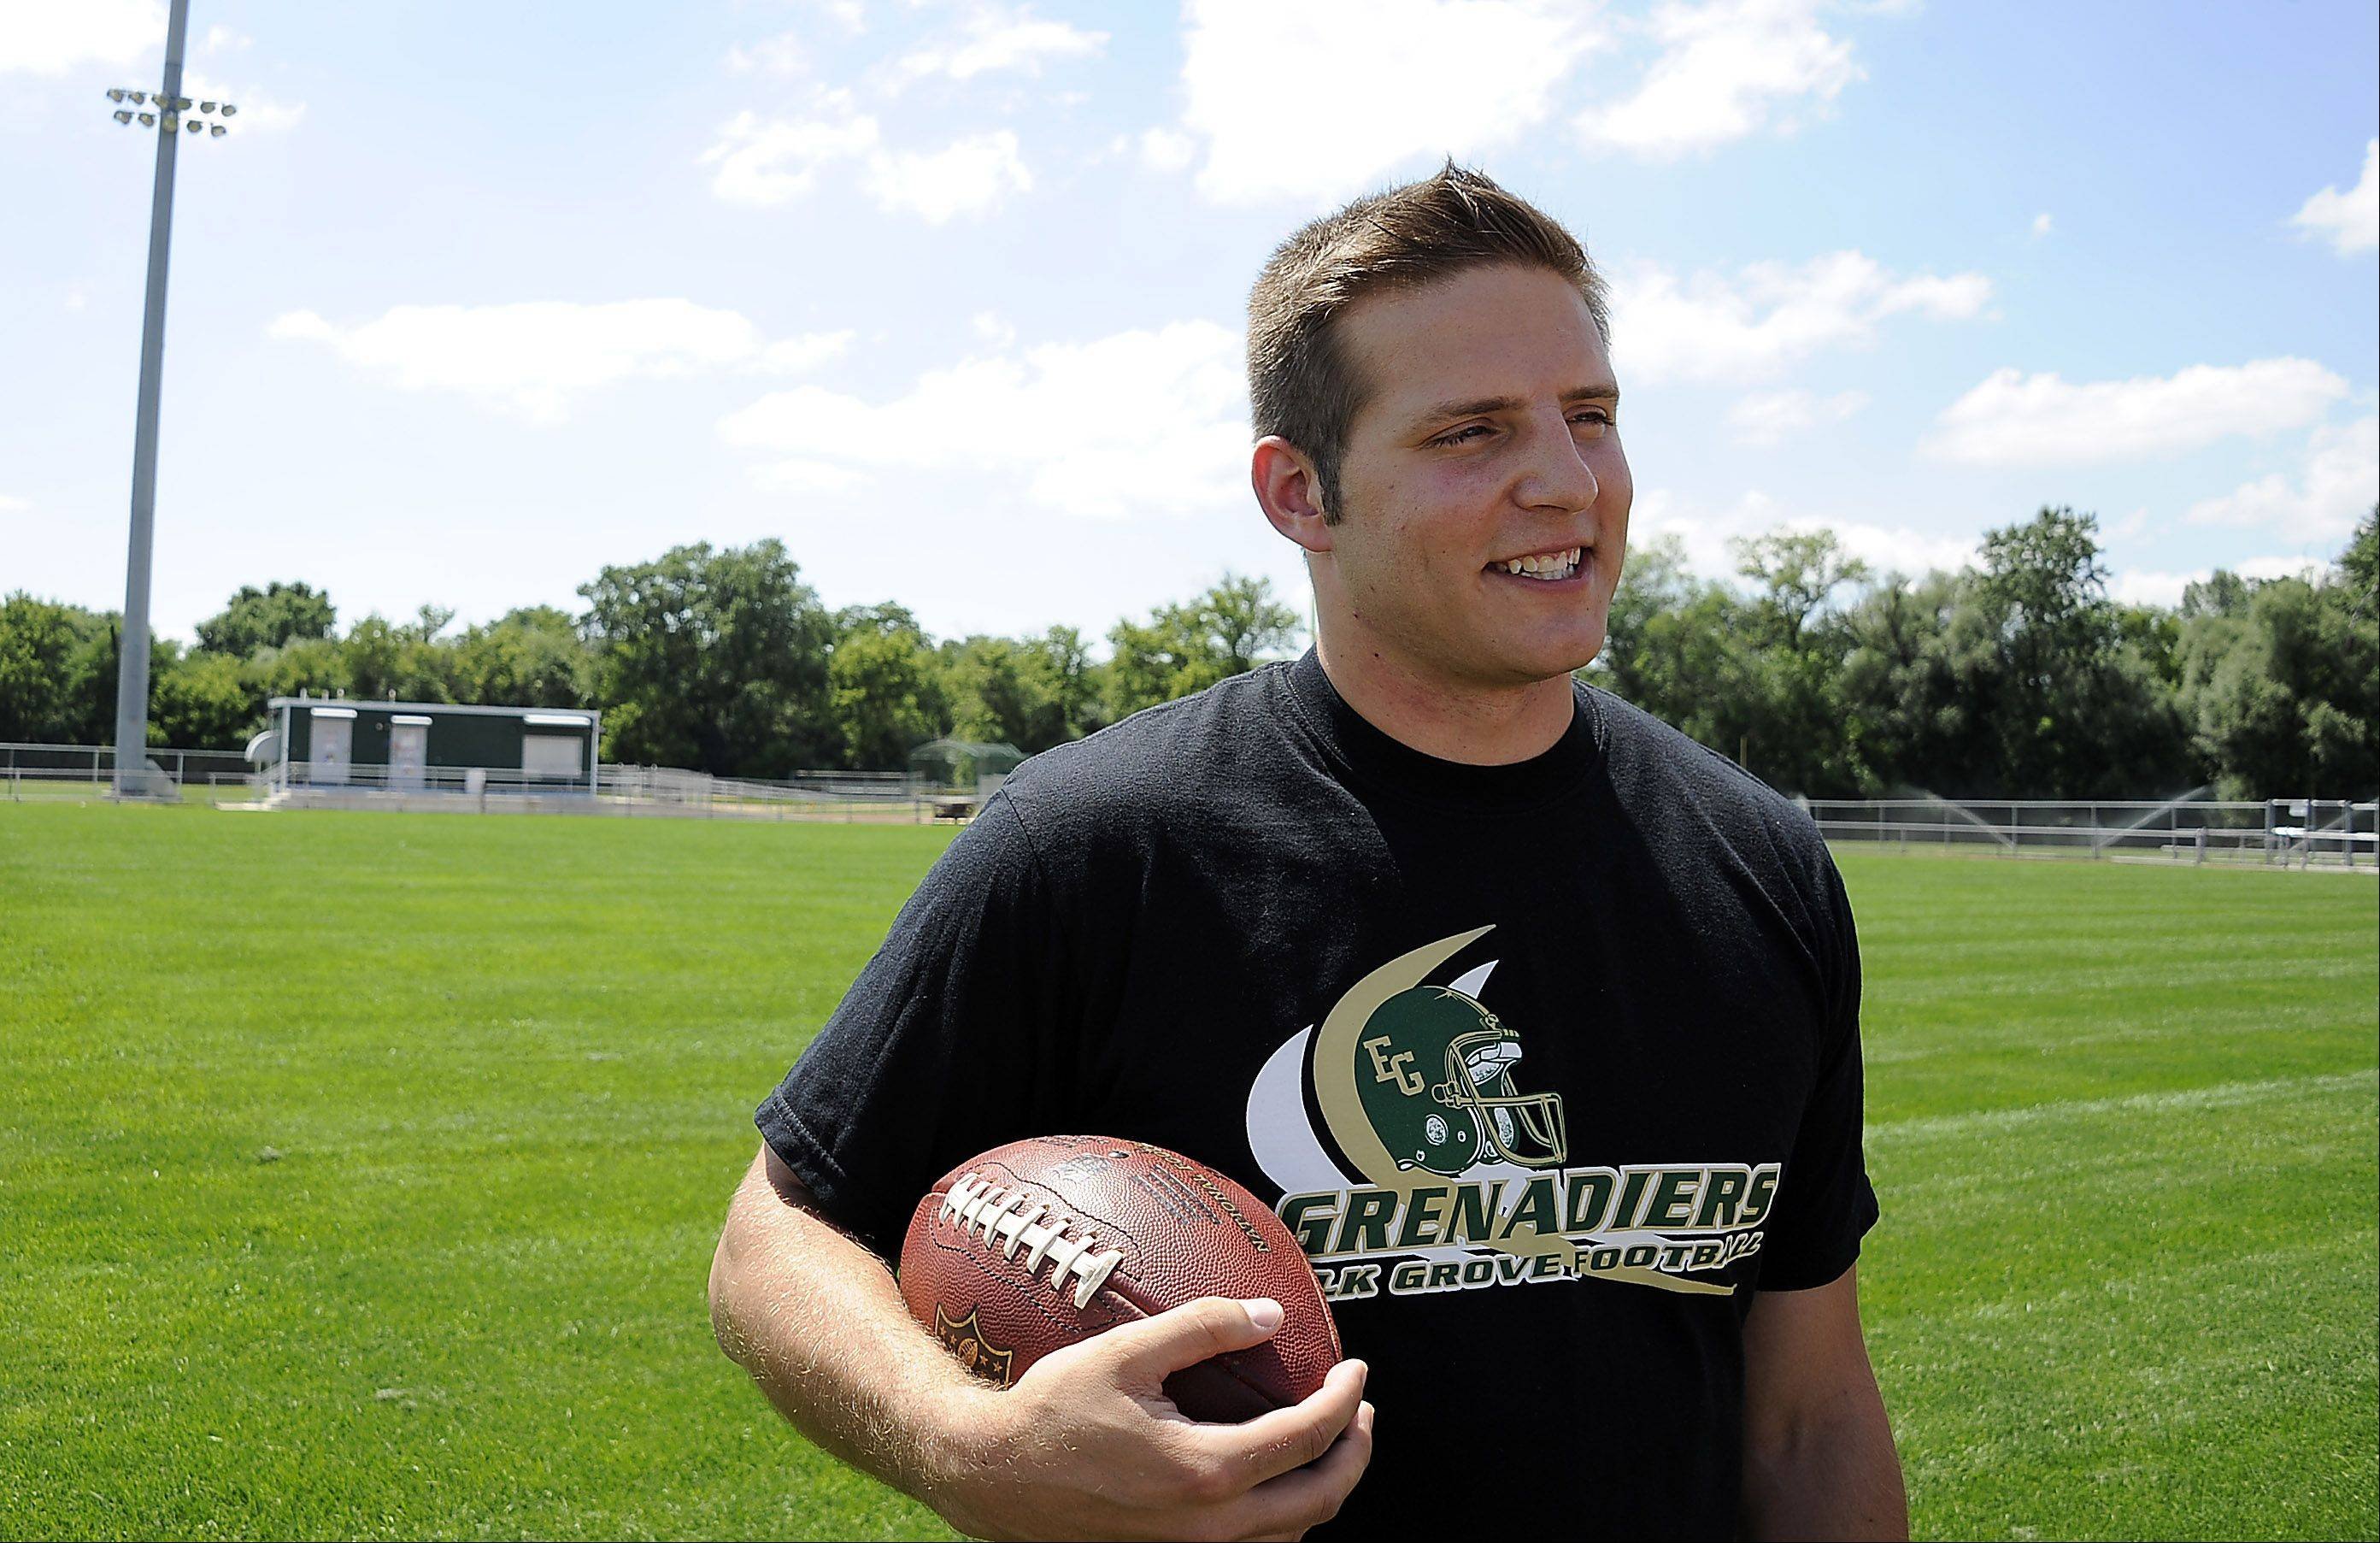 Standing on Elk Grove High School's football field, graduate Tom Kudyba, 28, a former quarterback for the school's football team, said he'd love to one day the head coach for the school. But for now he is headed to be the head coach for a professional football team in Brazil.